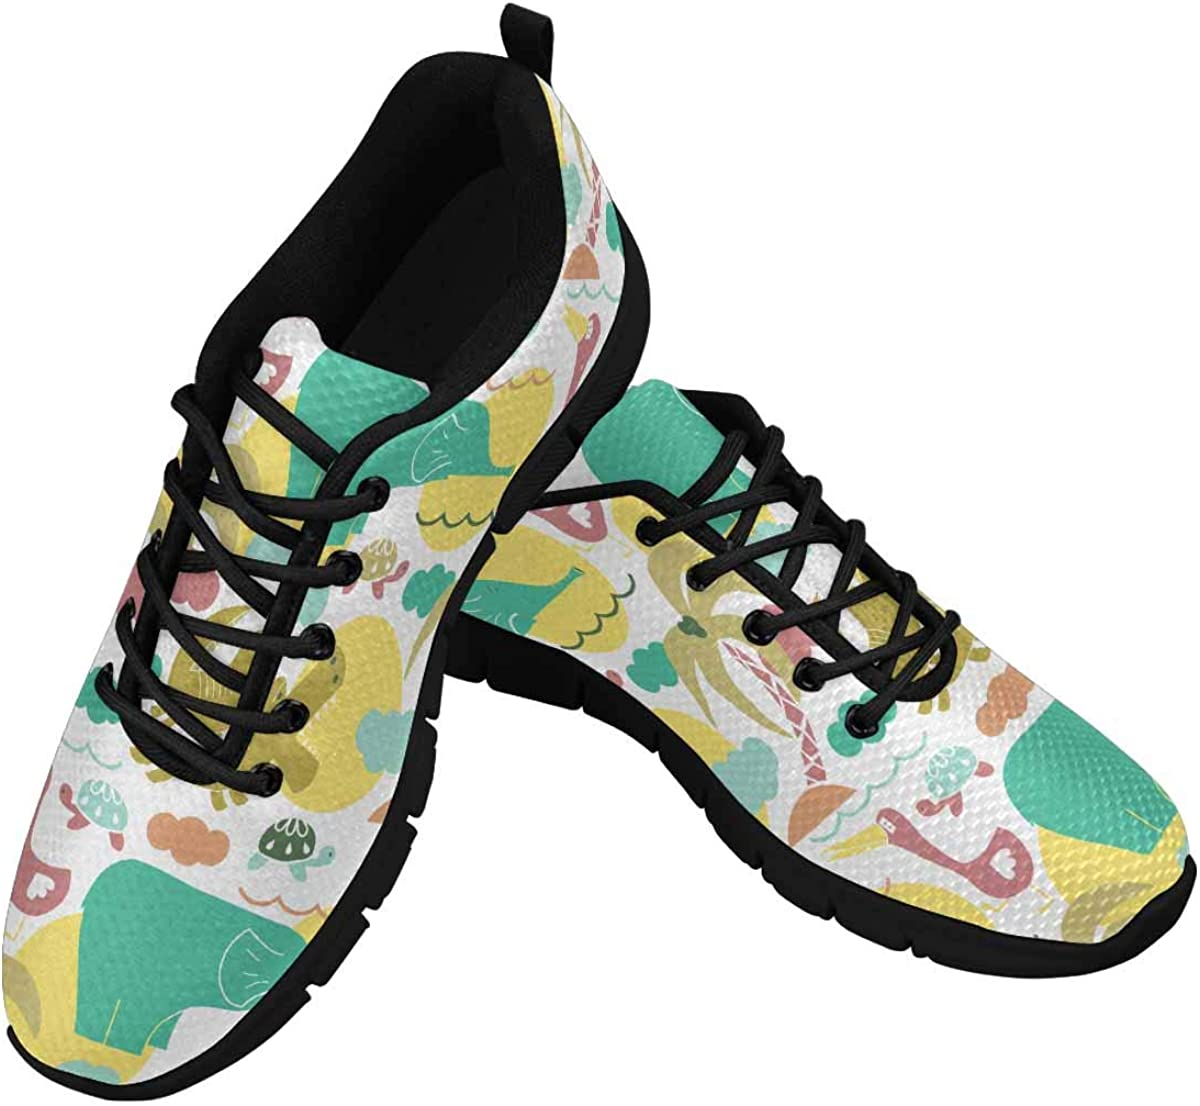 INTERESTPRINT African Animals Pattern Women's Lightweight Athletic Casual Gym Sneakers